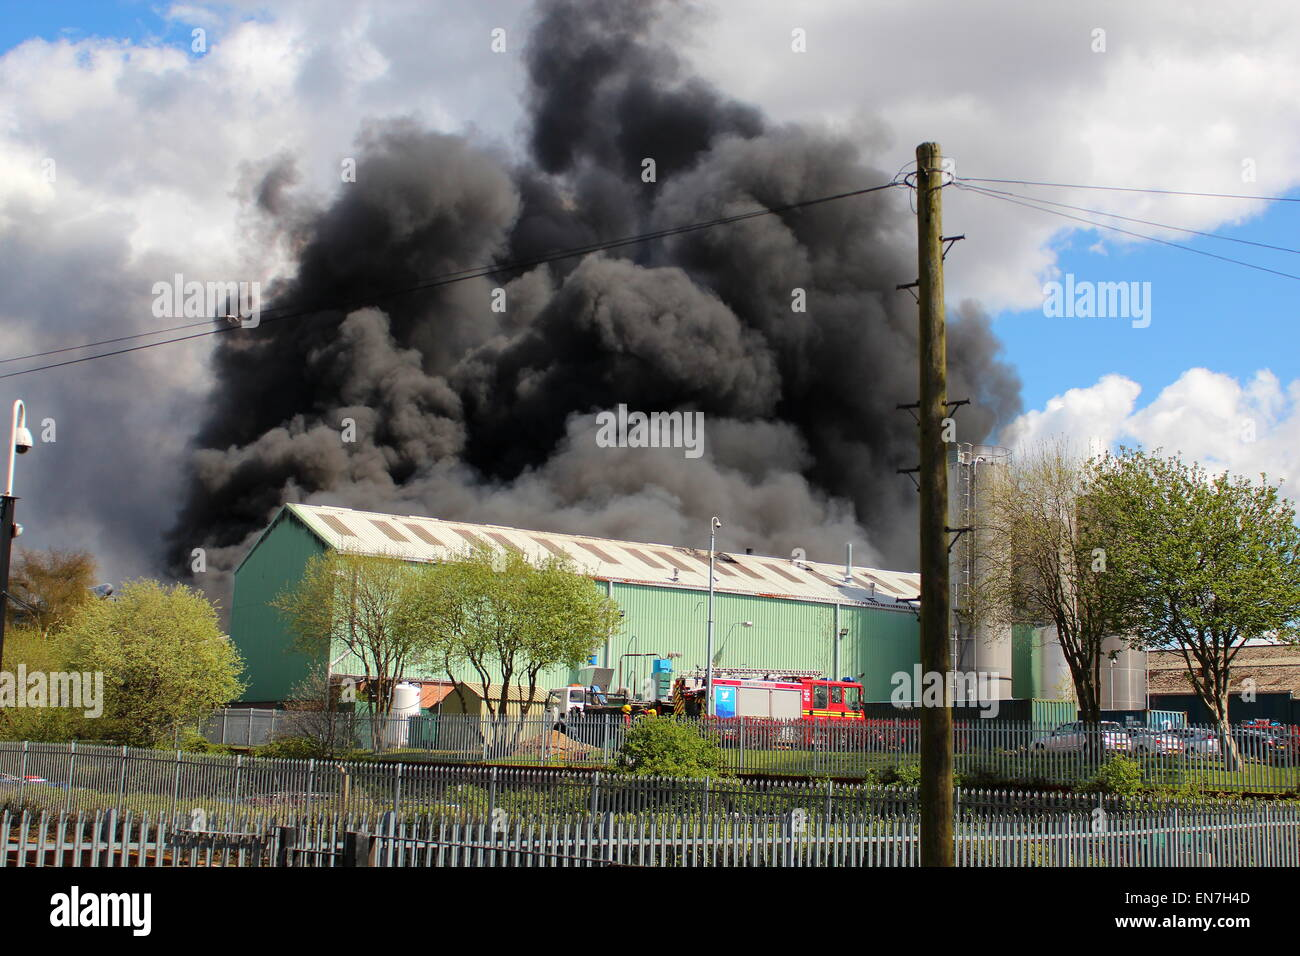 Oldbury, West Midlands, UK. 29th April, 2015. Up to 75 firefighters are tackling a large fire which has broken out - Stock Image